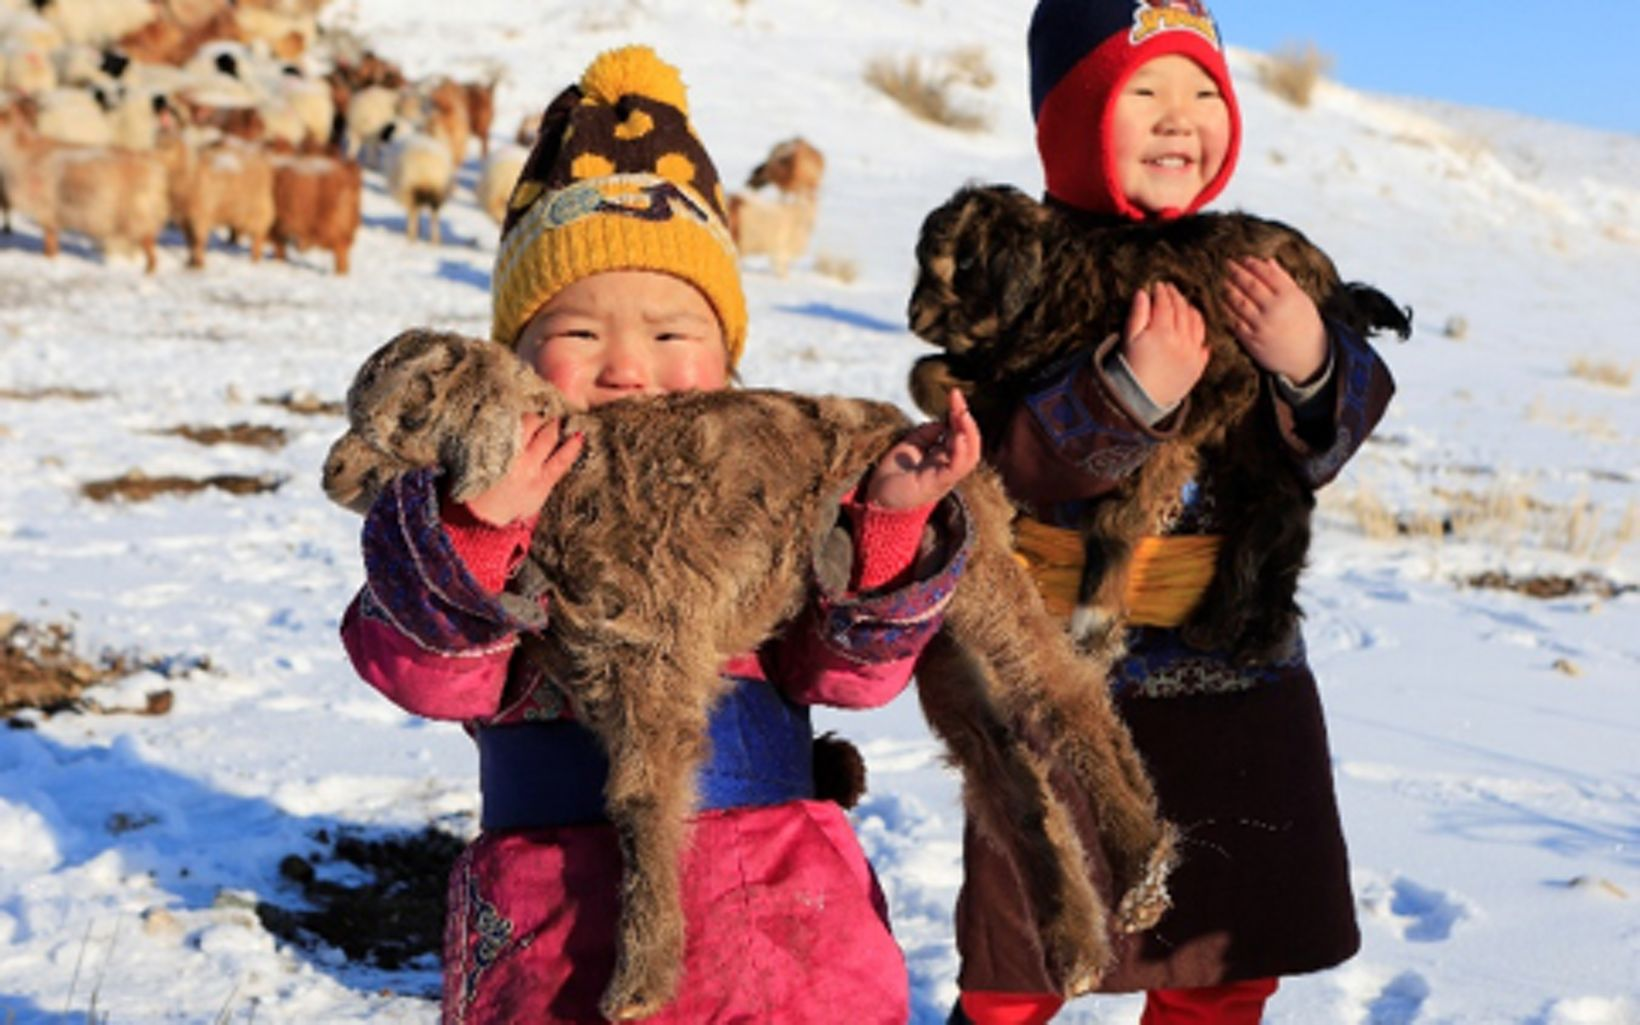 Two young Mongolian children stand in the snow while each holding a baby goat.